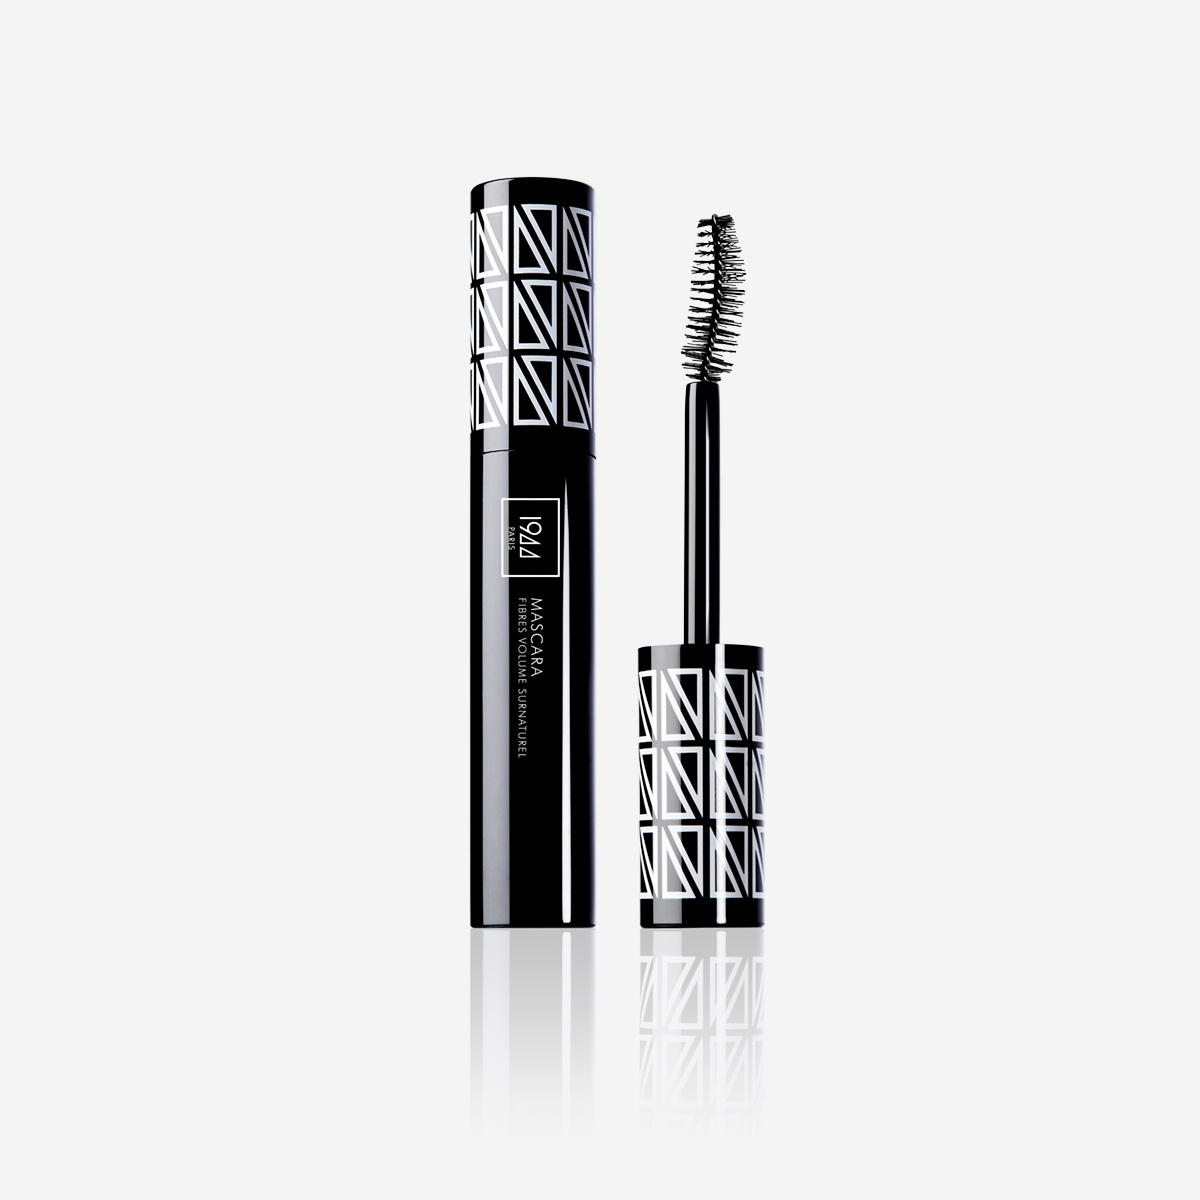 Le Mascara Fibre Volume Surnaturel 1944 - Volumizing Fiber Mascara